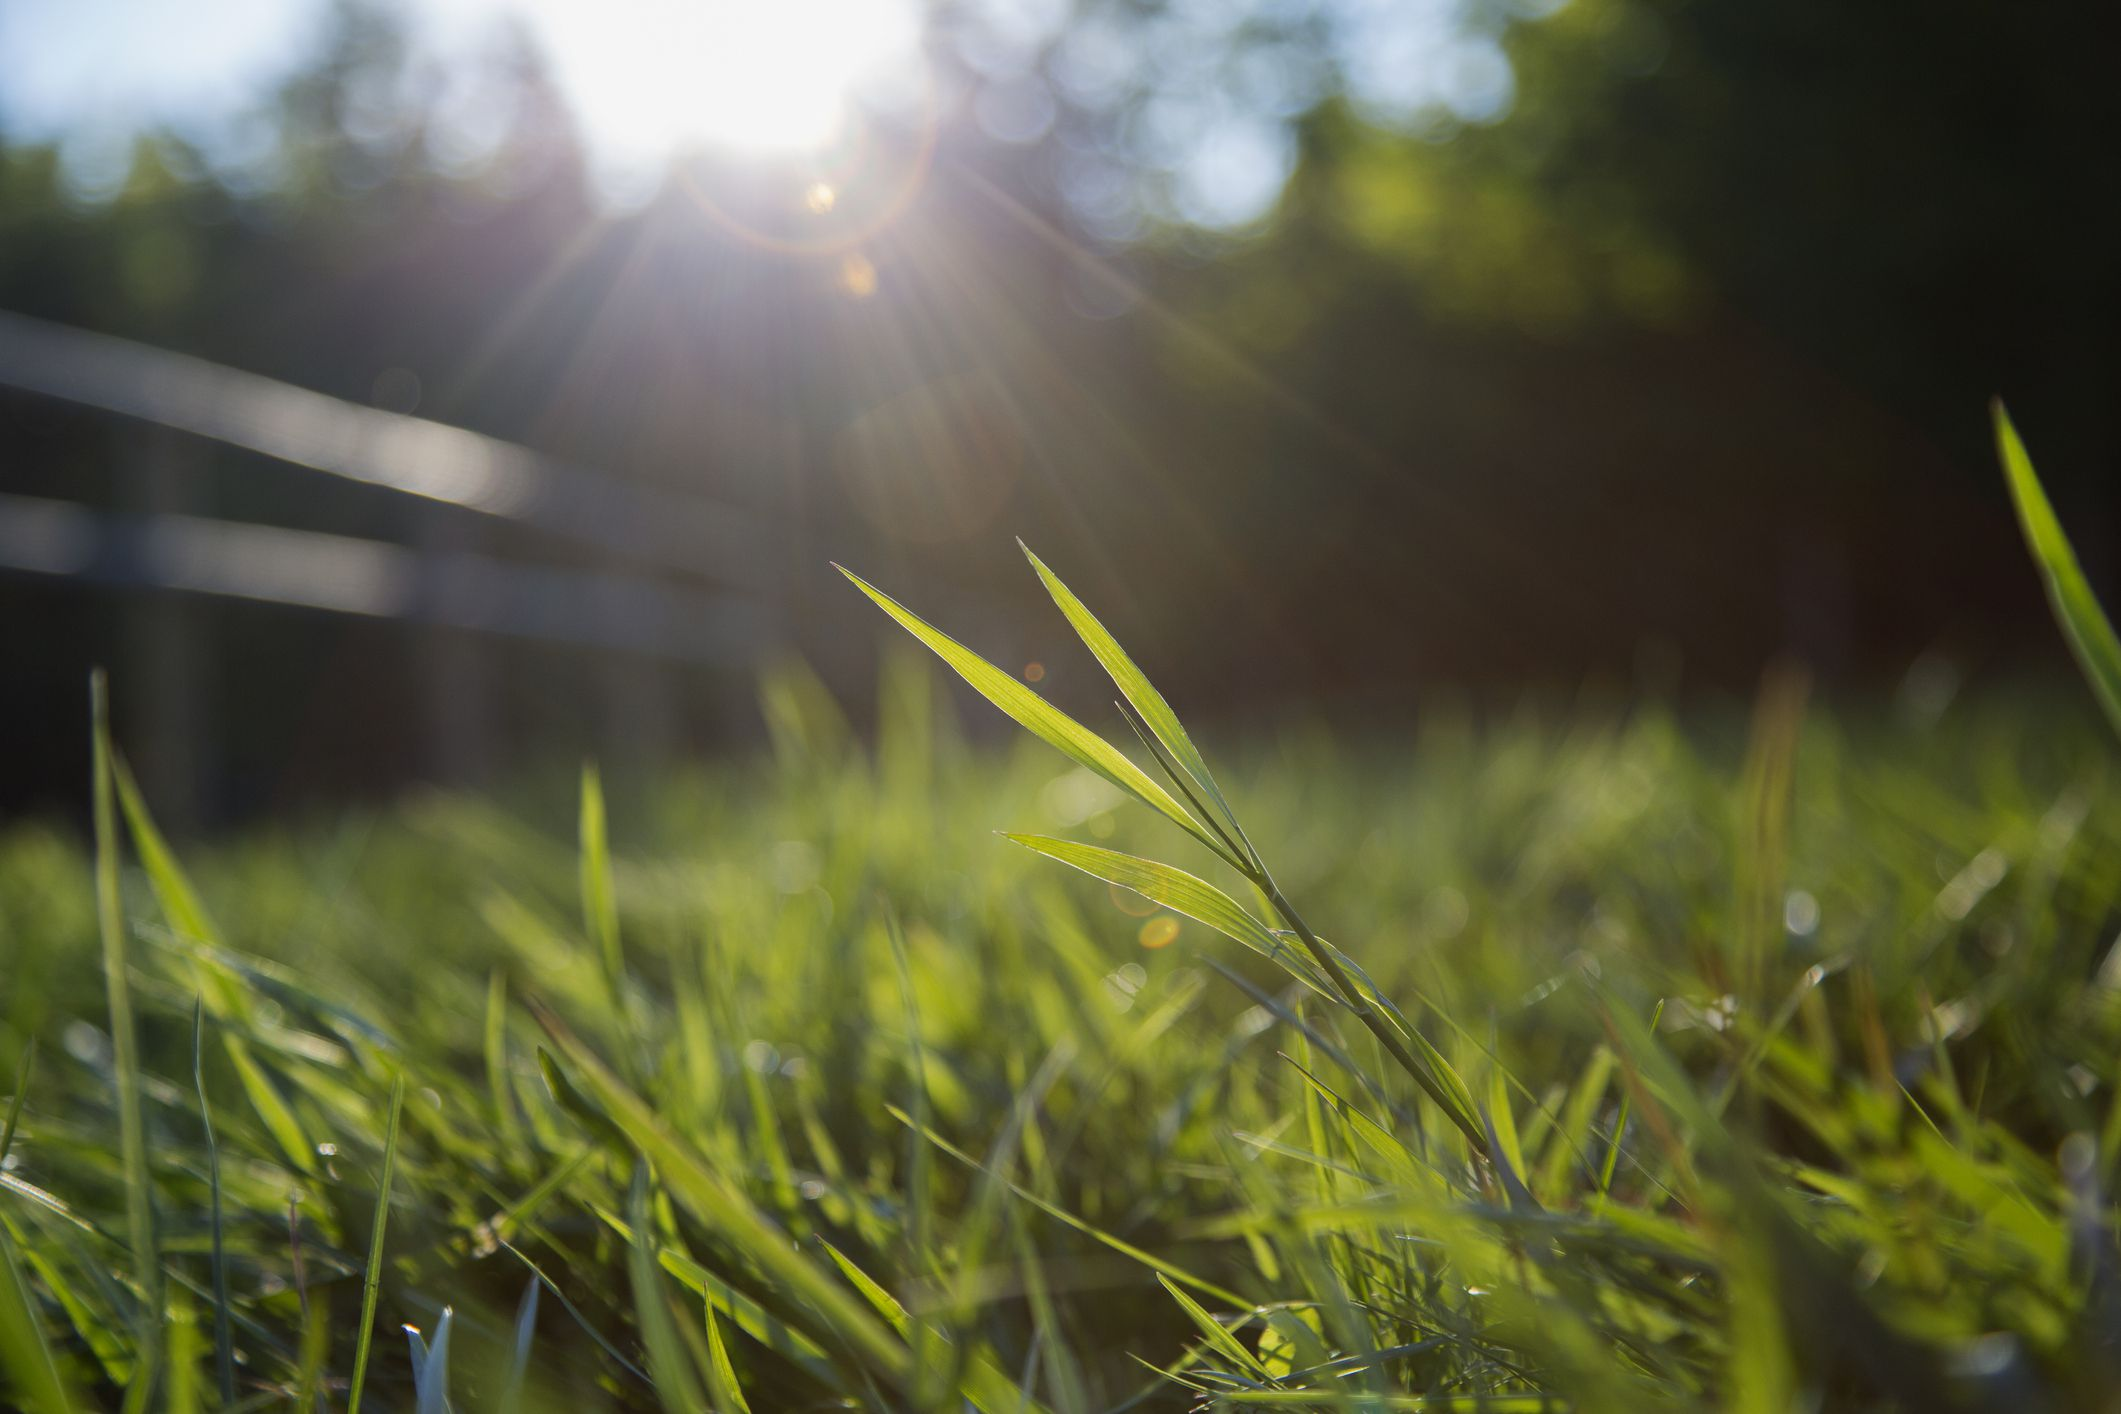 How To Kill Grass The Natural Way Using Newspapers